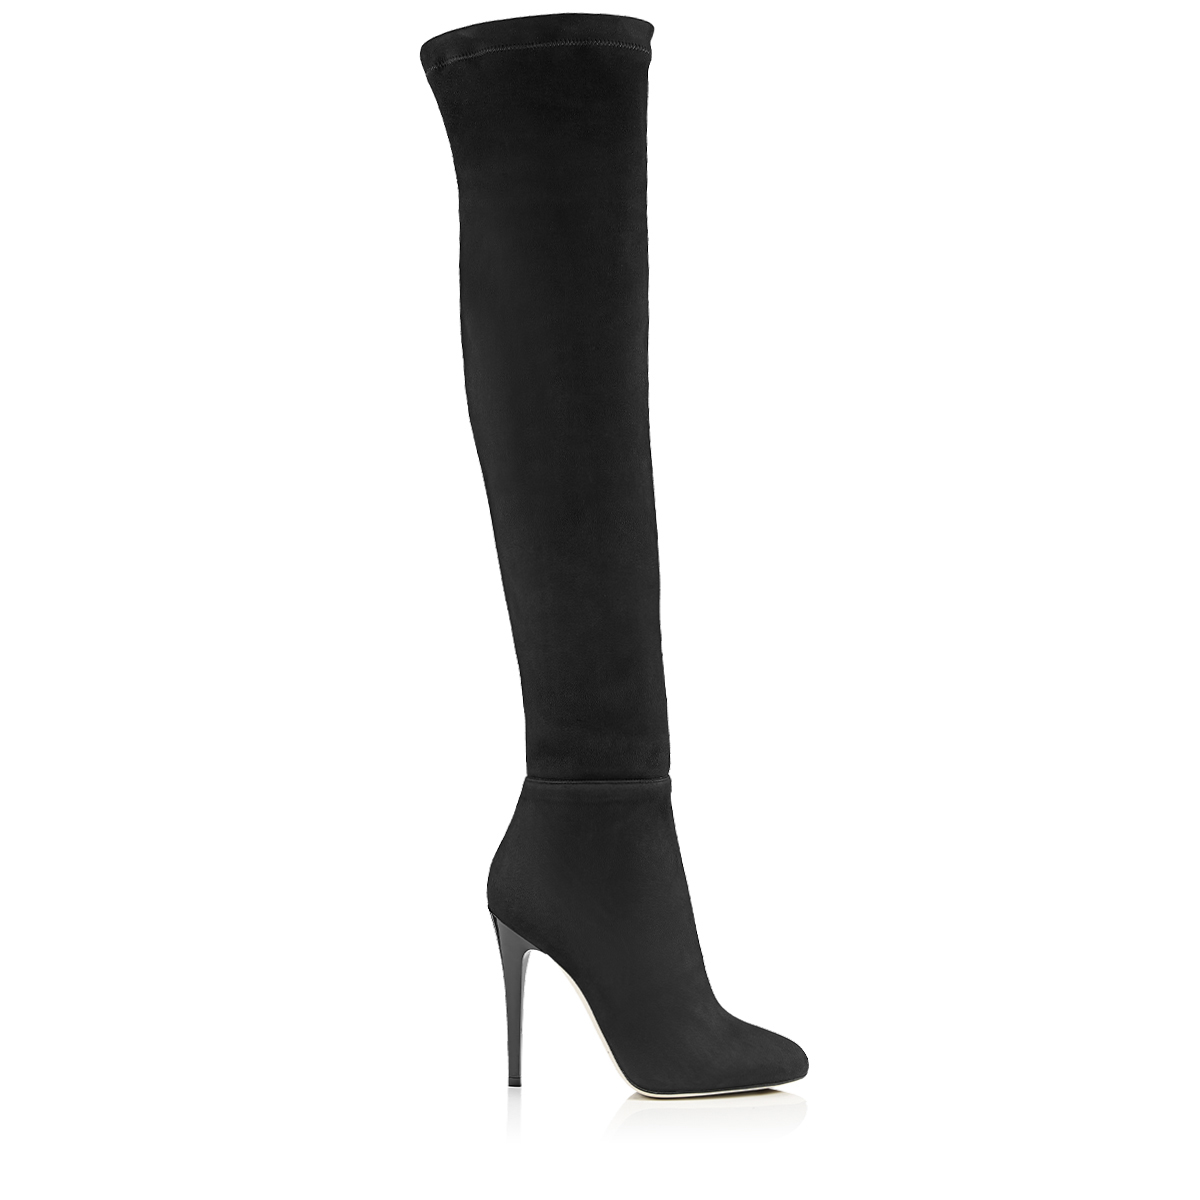 TURNER Black Suede and Stretch Suede Over the Knee Boots